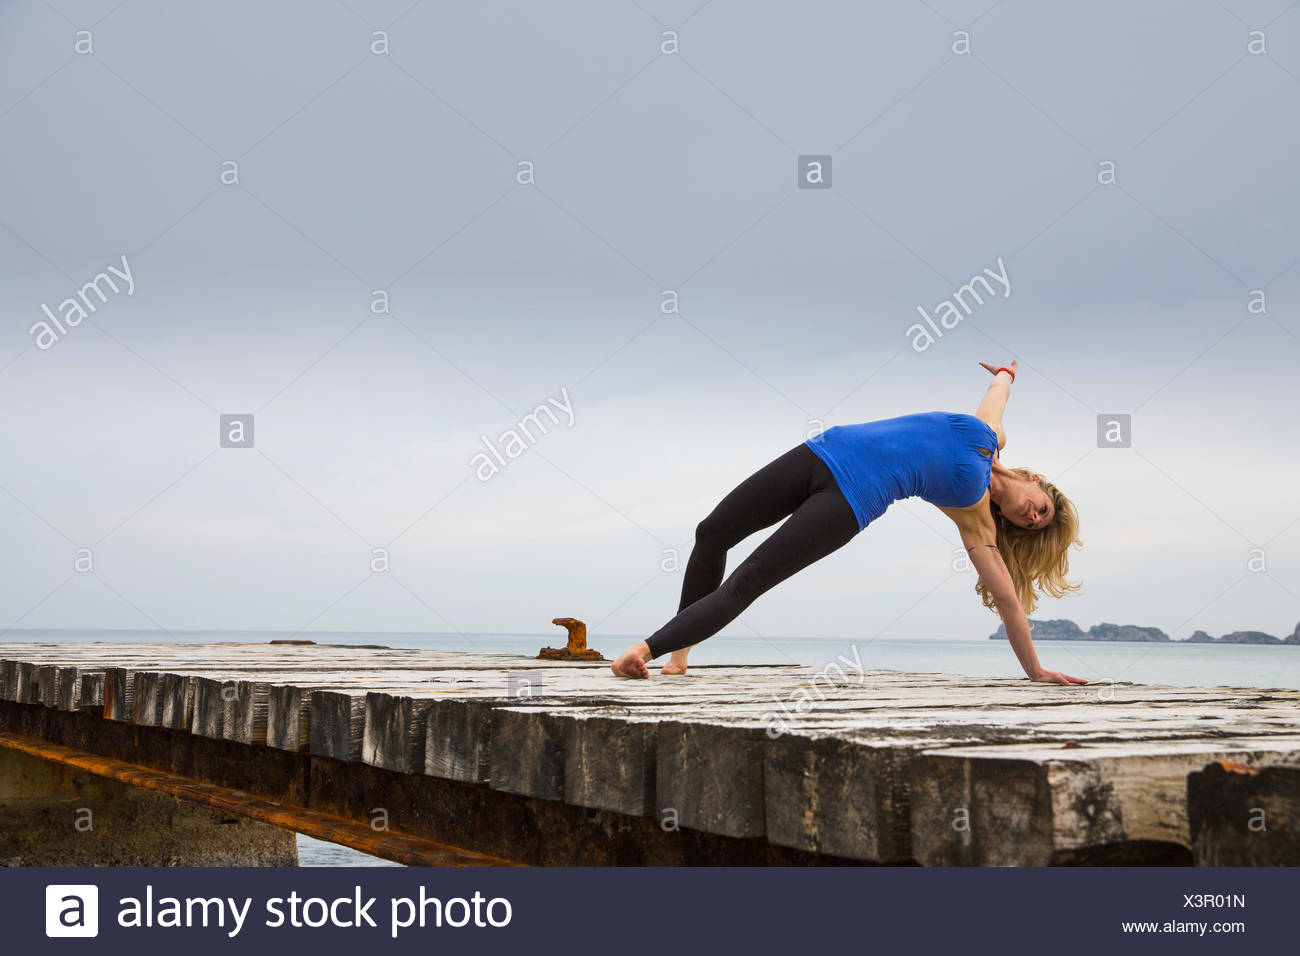 Mid adult woman practicing yoga move on wooden sea pier - Stock Image